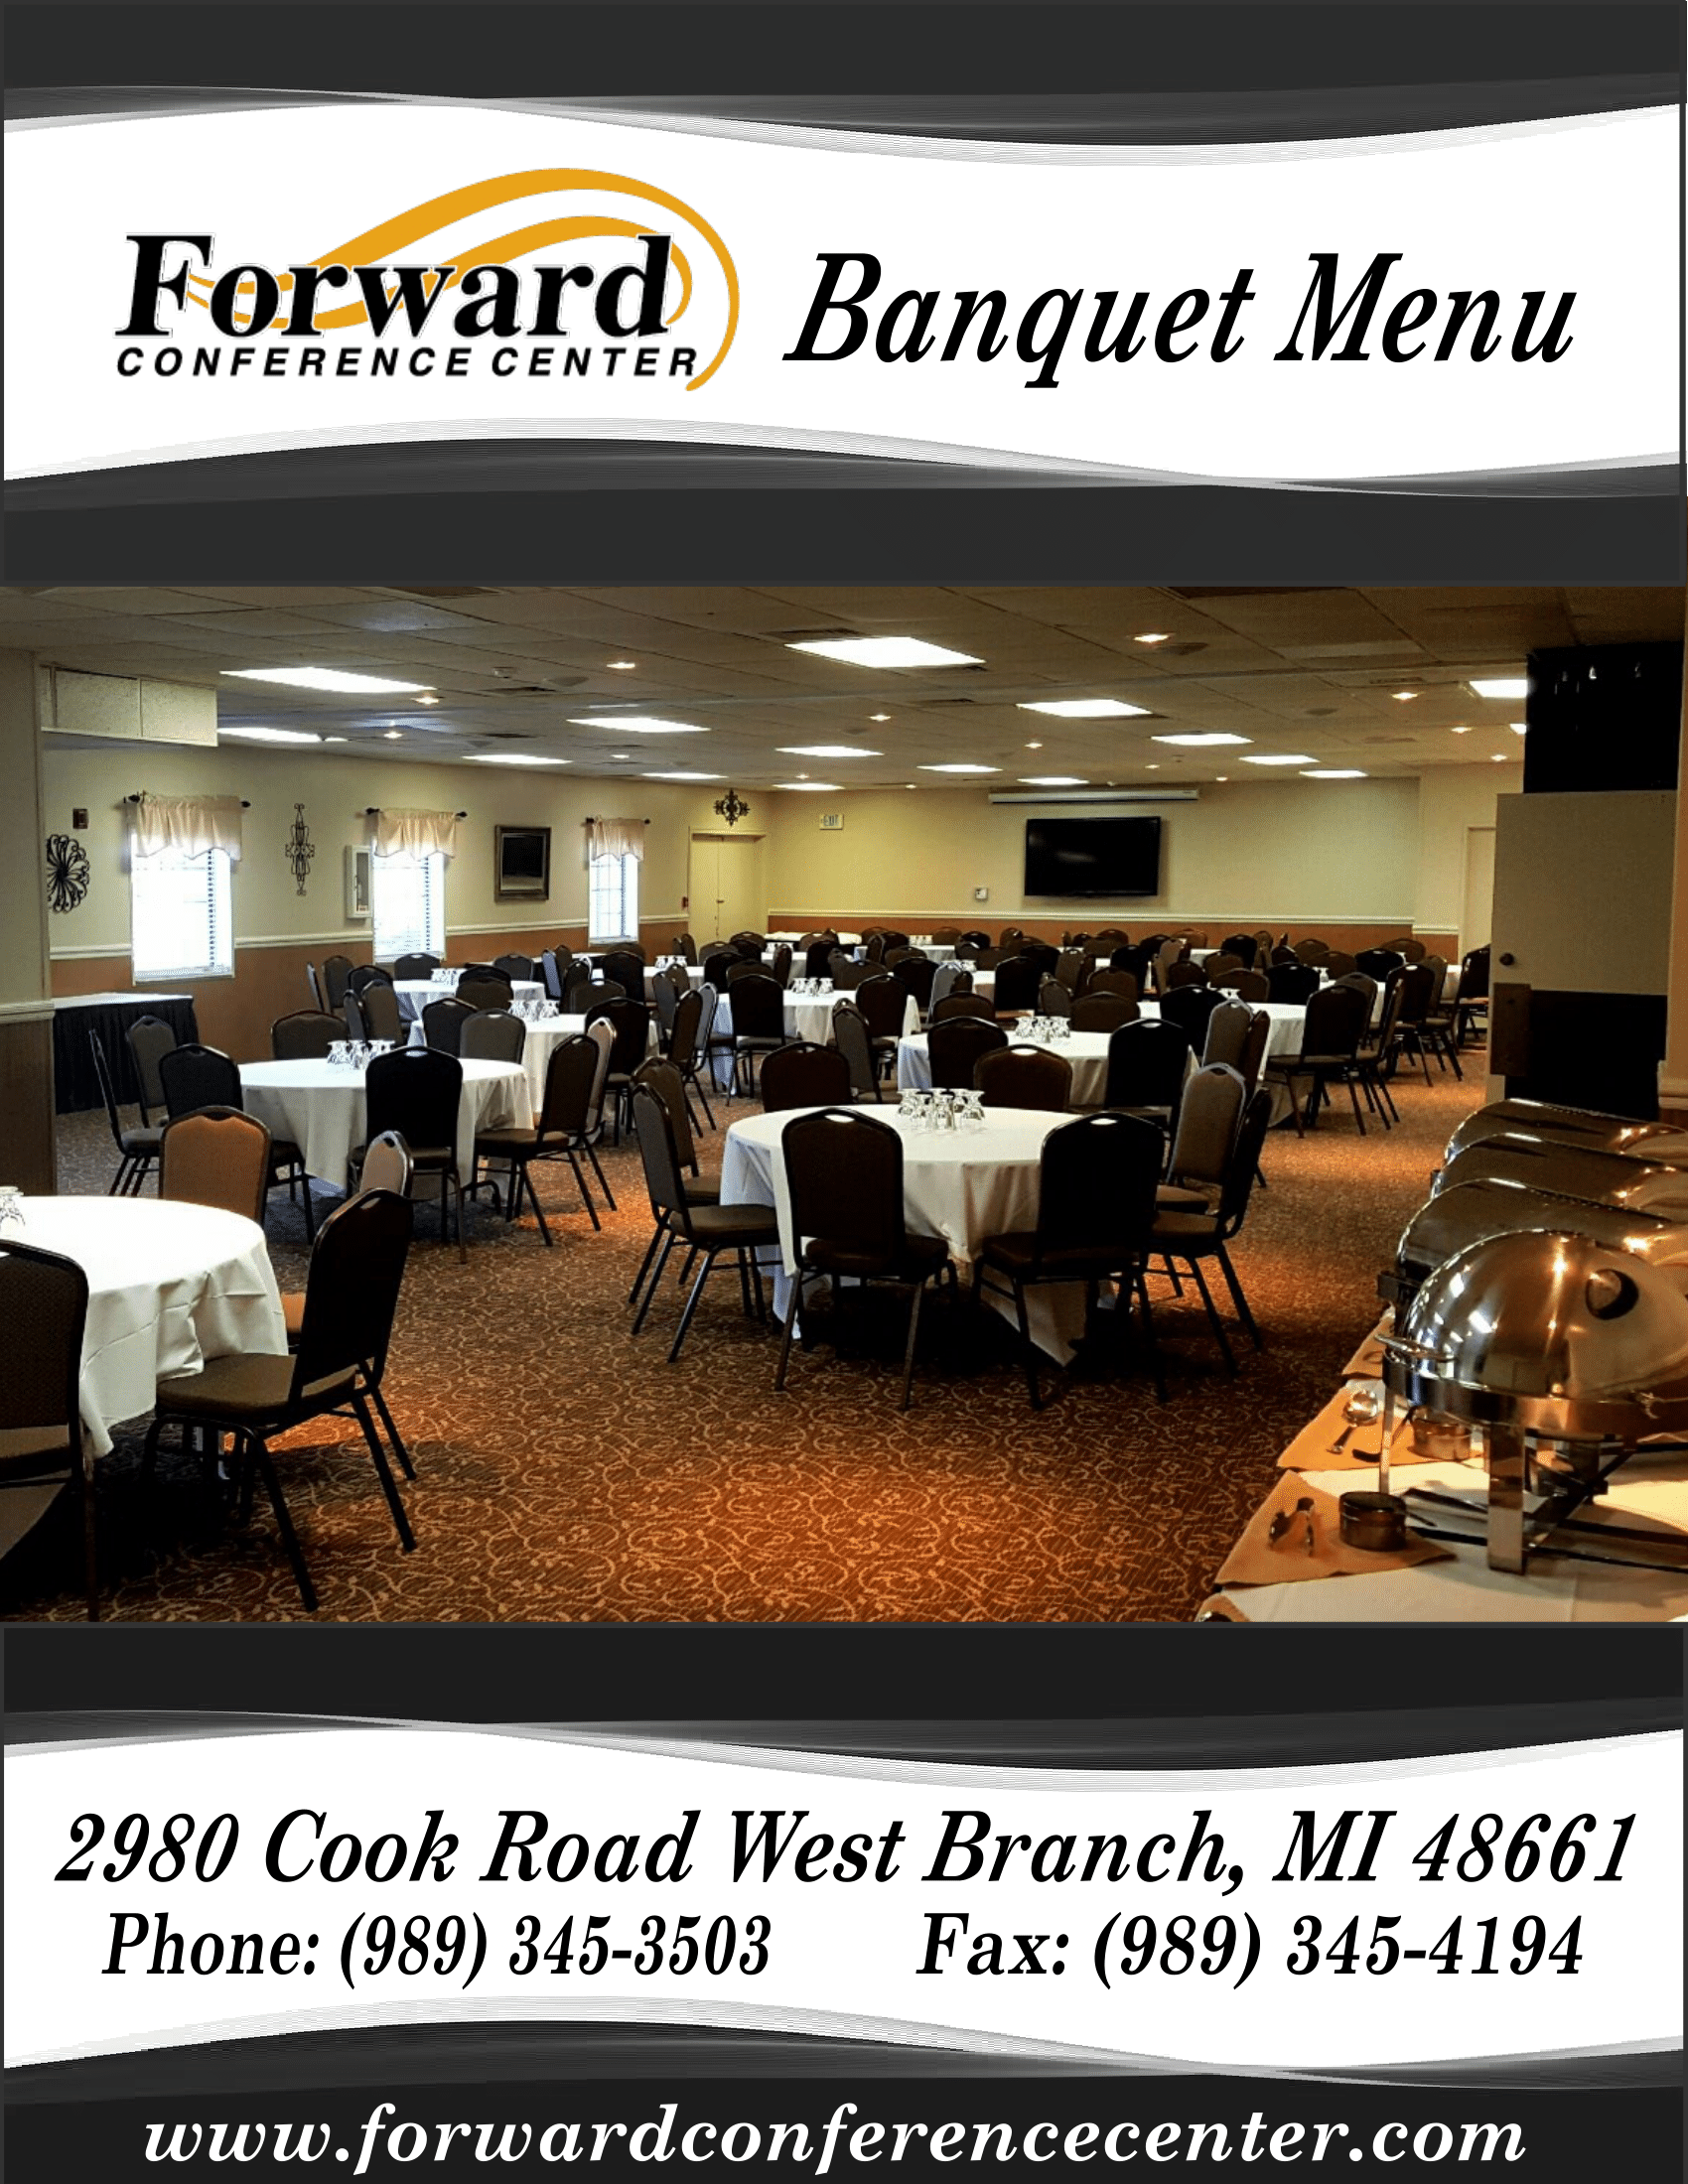 Full Banquet Menu - #1